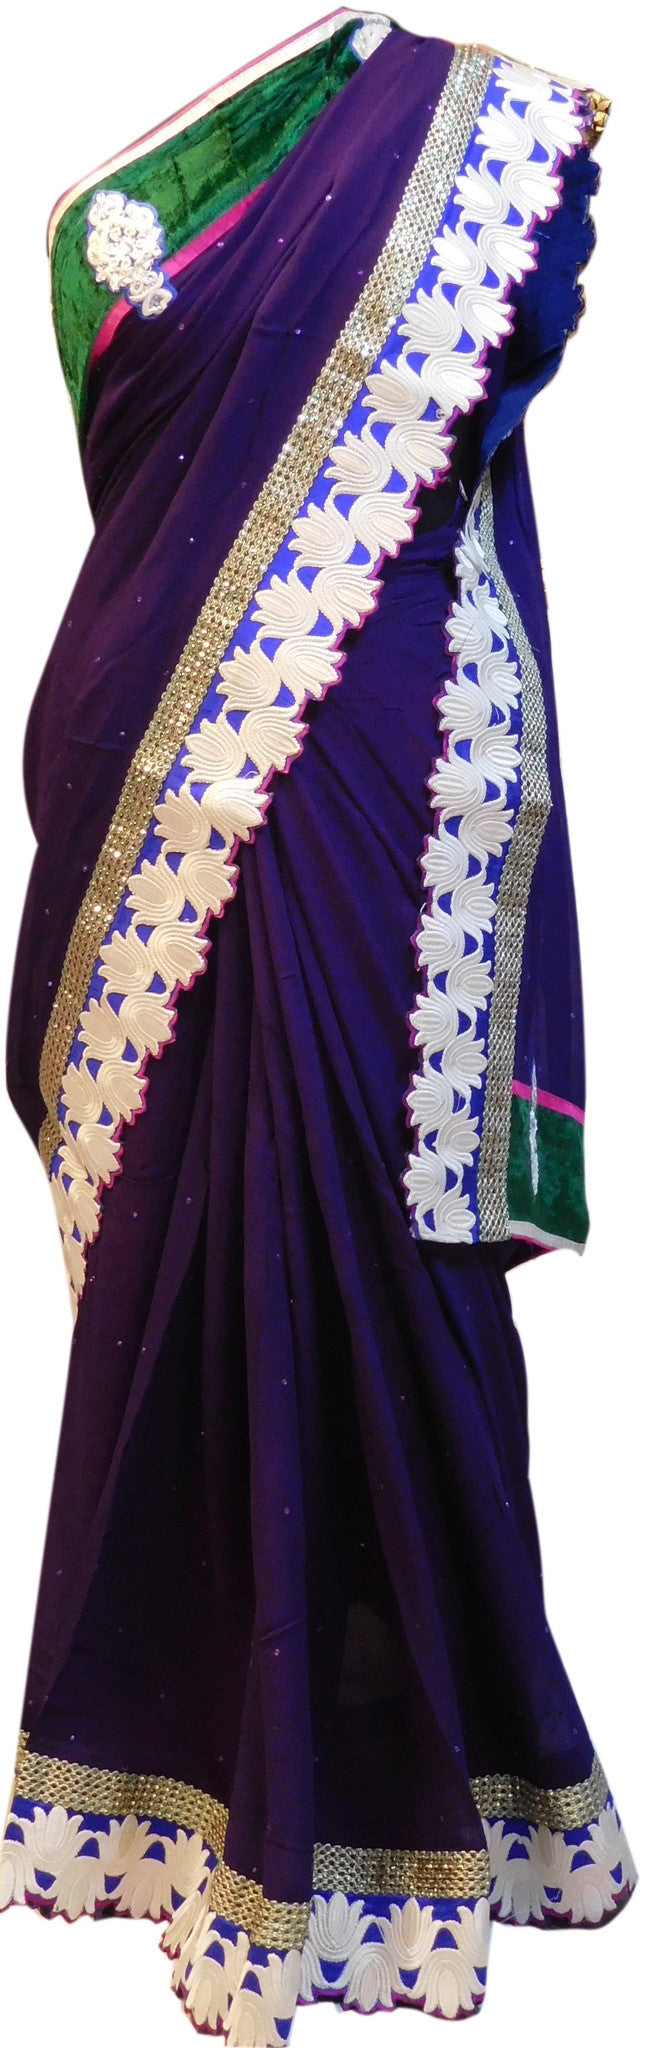 Indigo Stylish Saree